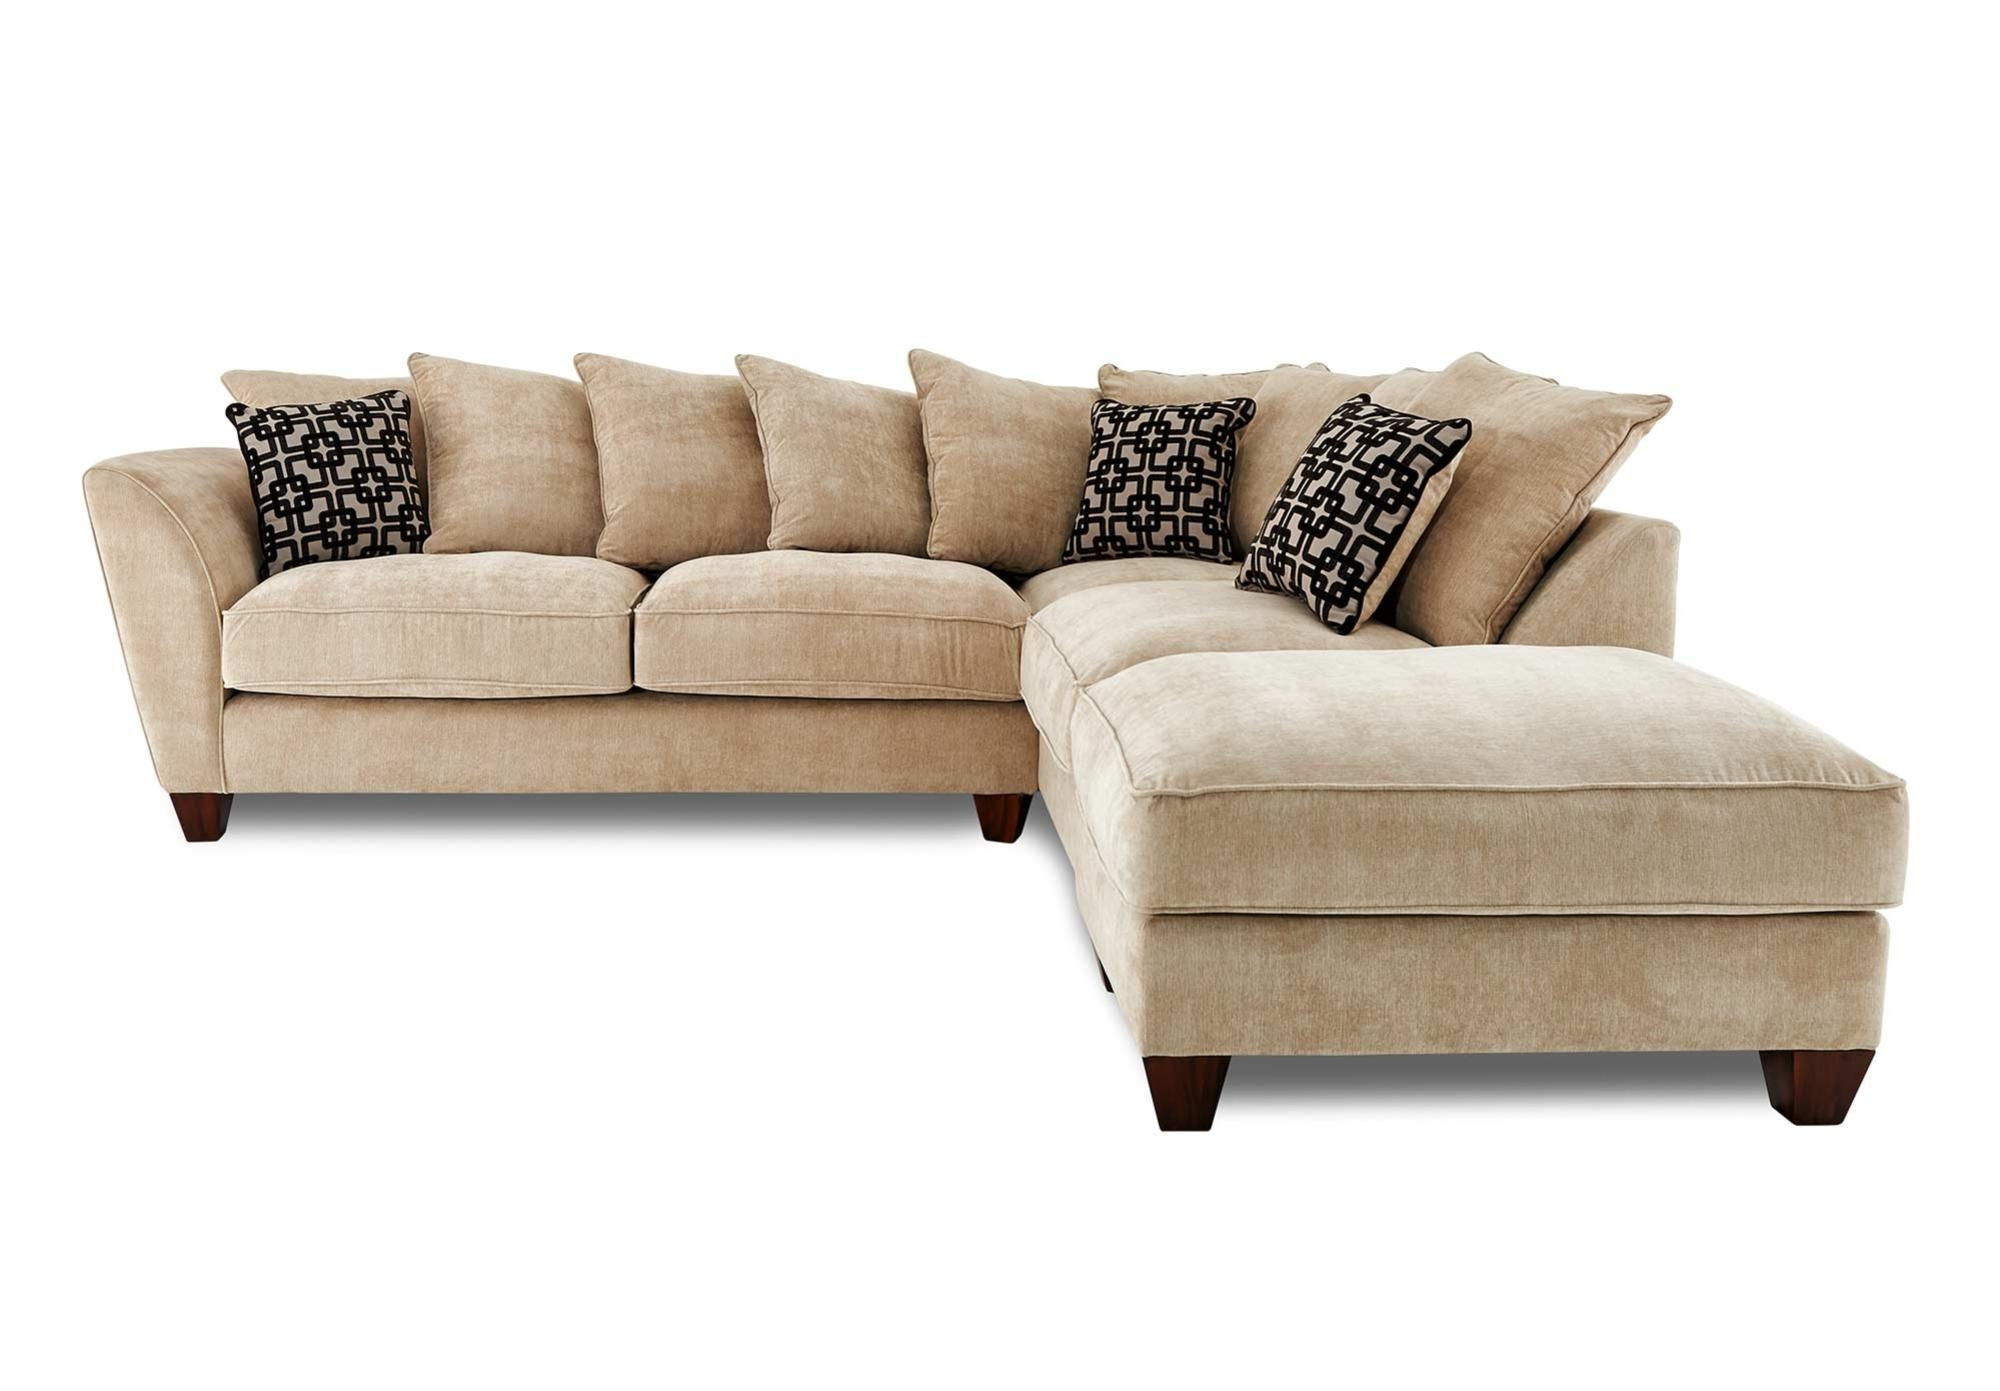 Corner Sofa – Helpformycredit For Corner Sofa Chairs (Image 2 of 20)